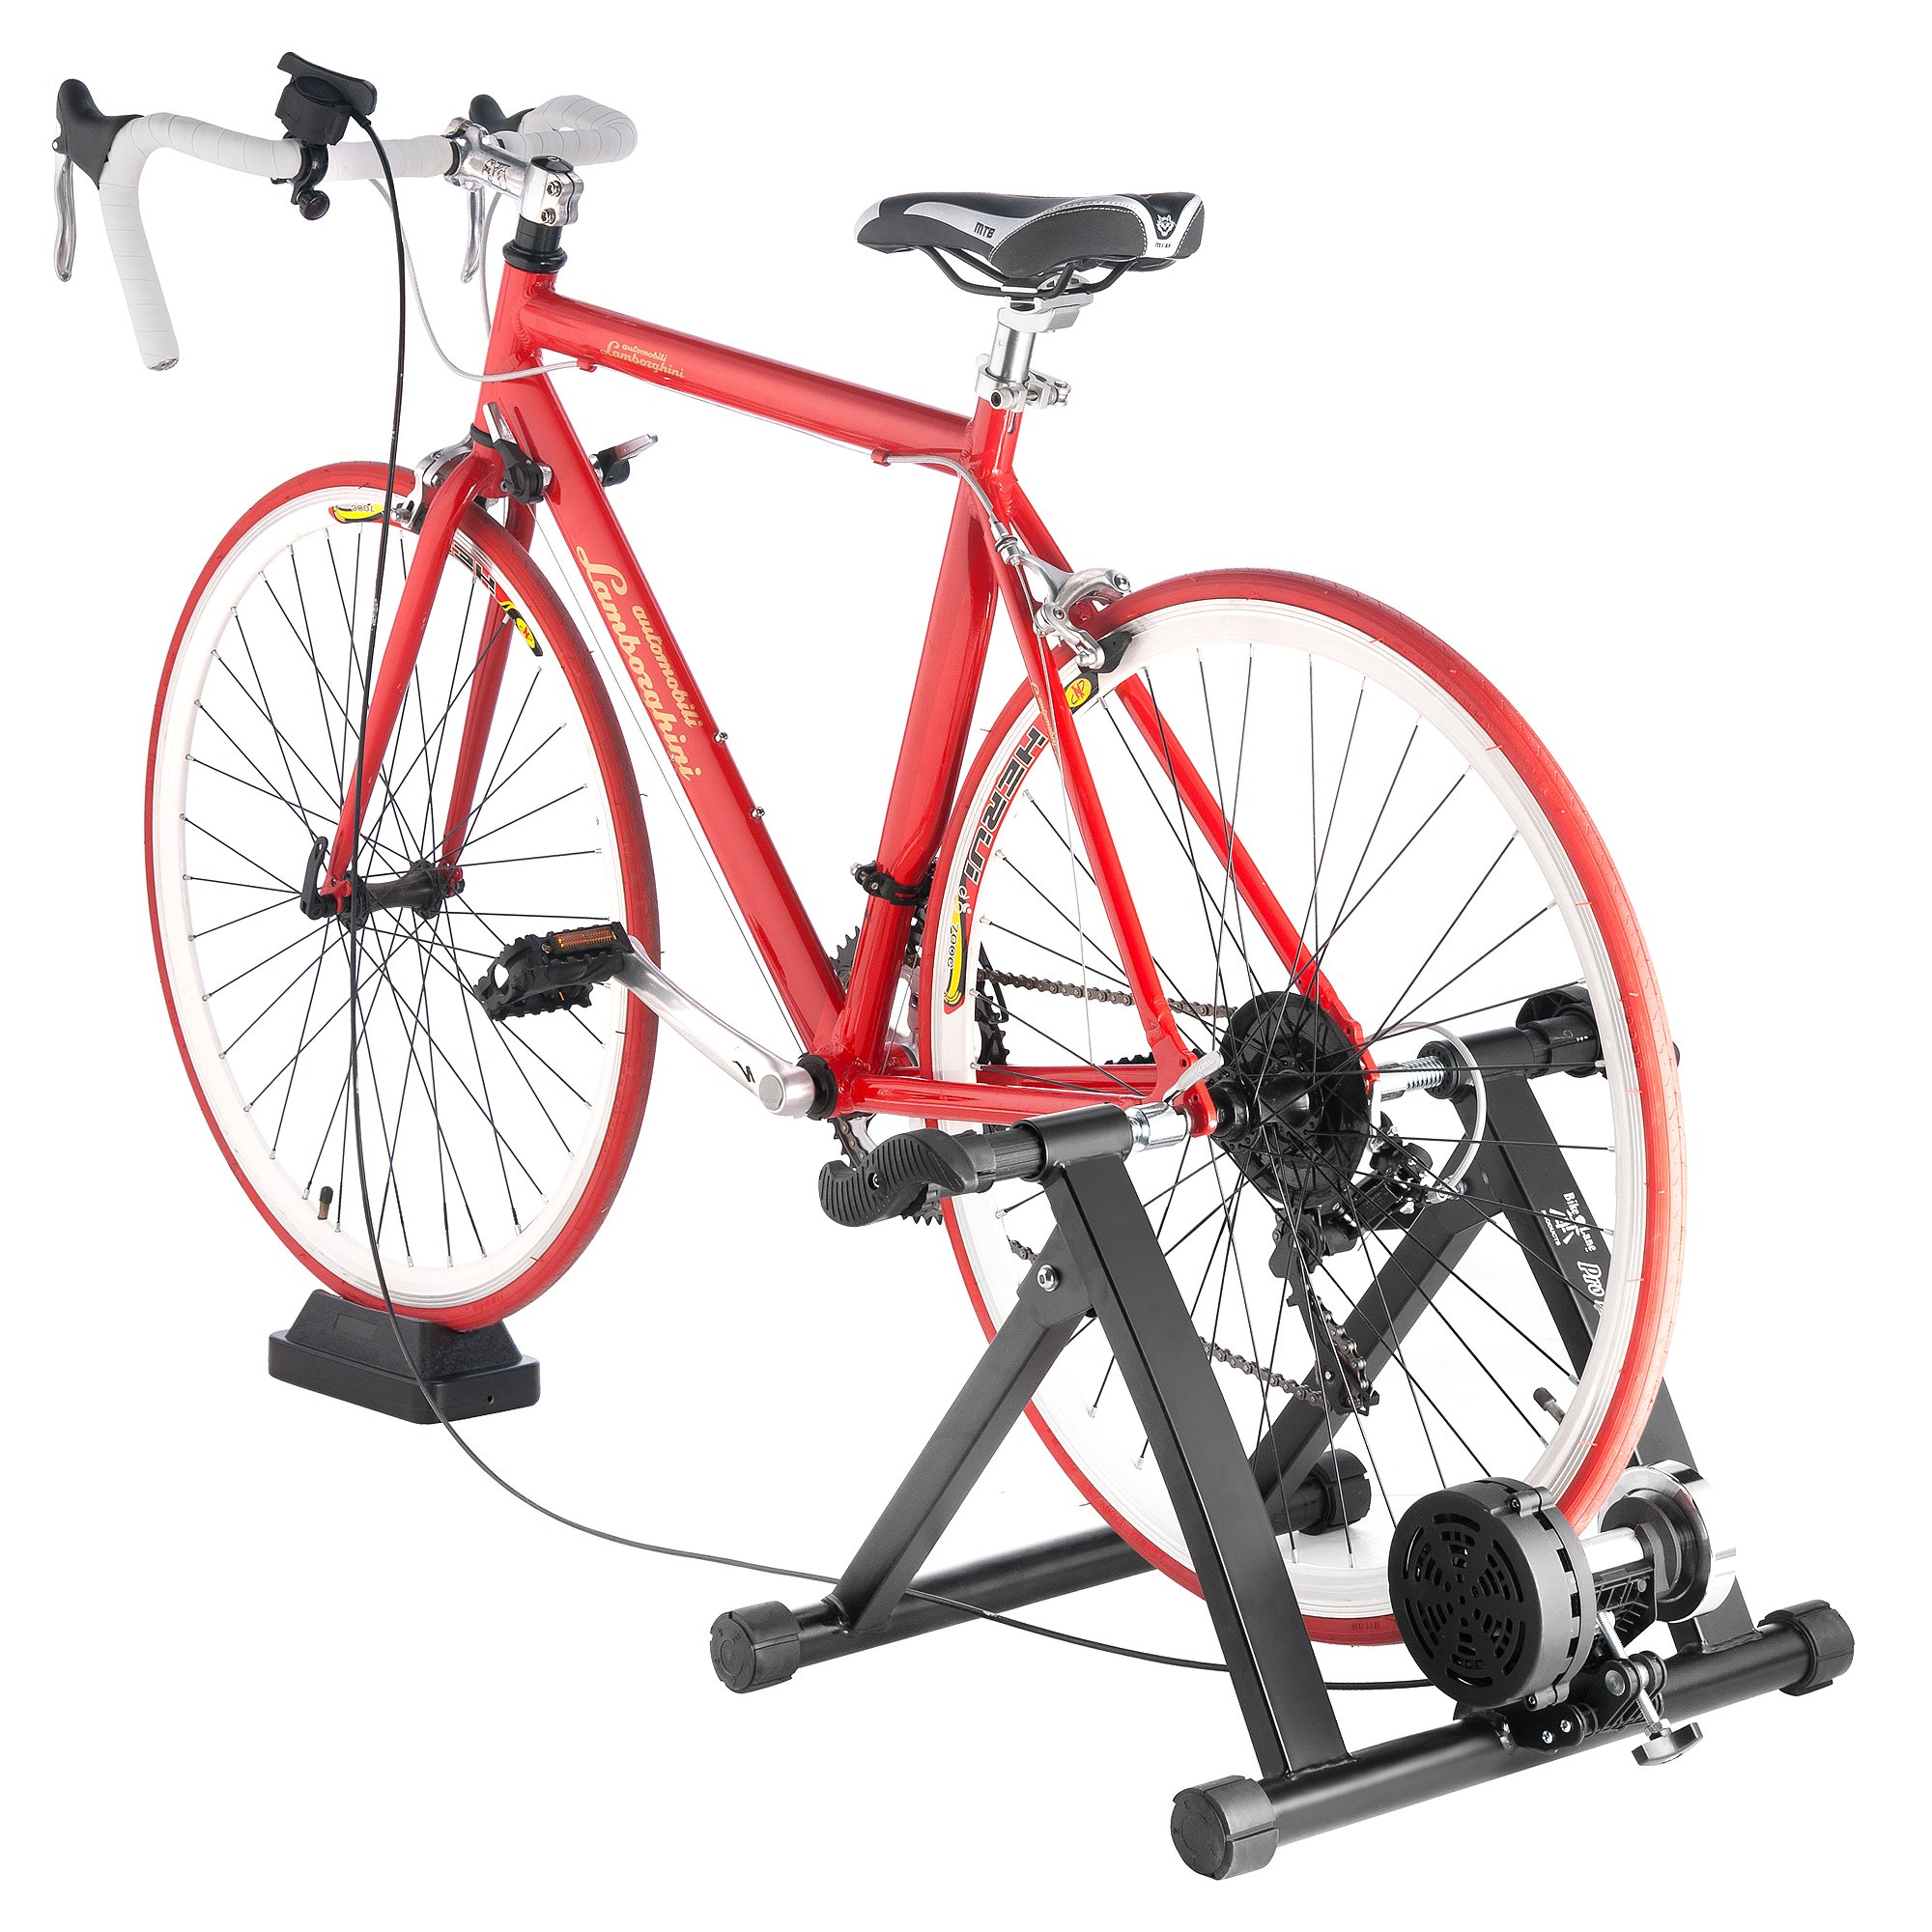 Bike Lane Pro Trainer Bicycle Indoor Trainer Exercise Machine Ride All Year by Bike Lane (Image #2)